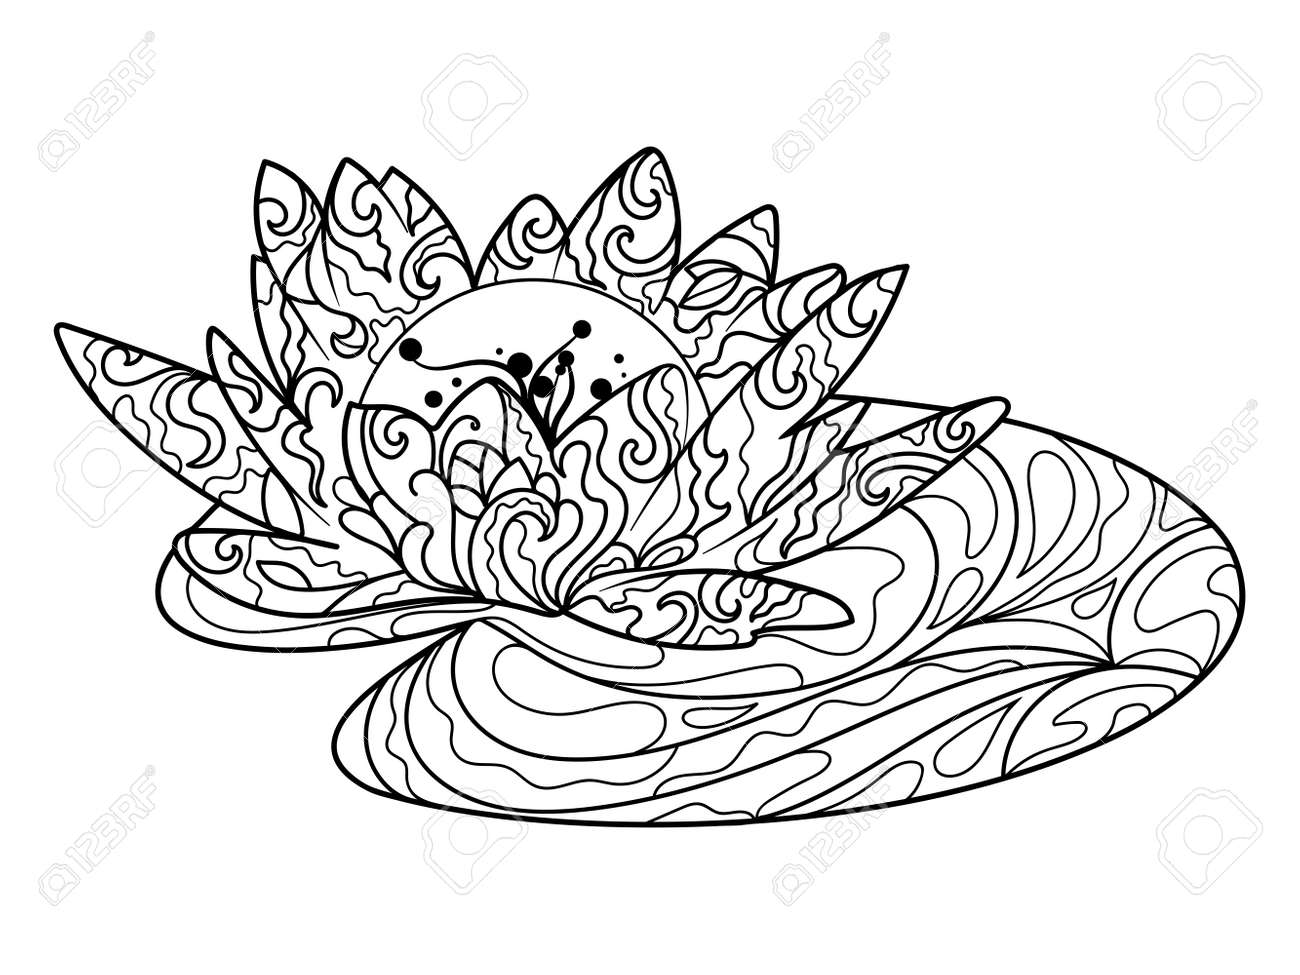 Lotus Water Lily Flower Coloring Book For Adults Vector Illustration ...